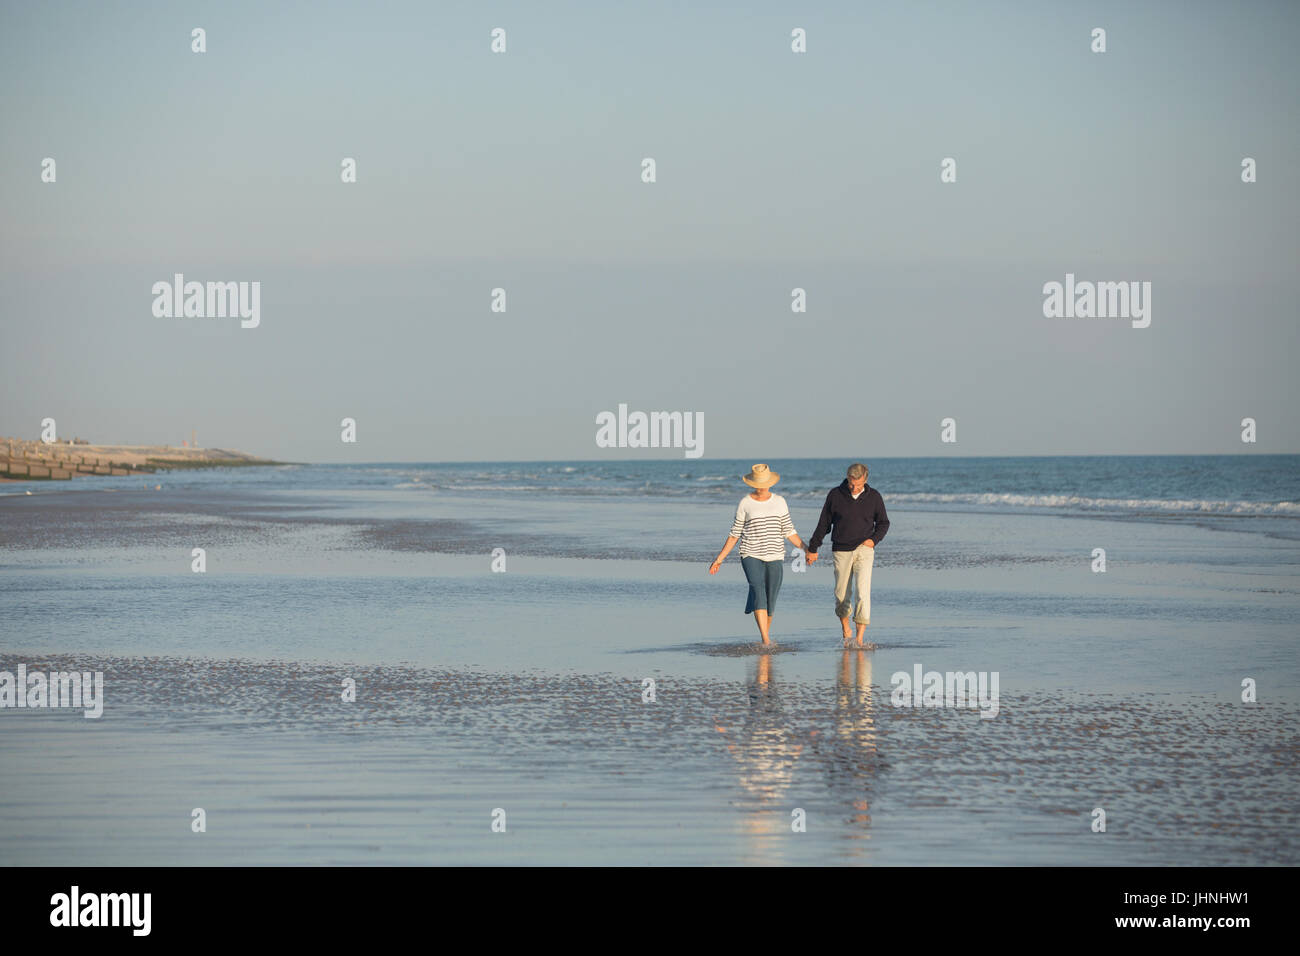 Mature couple holding hands walking in sunny ocean beach surf - Stock Image